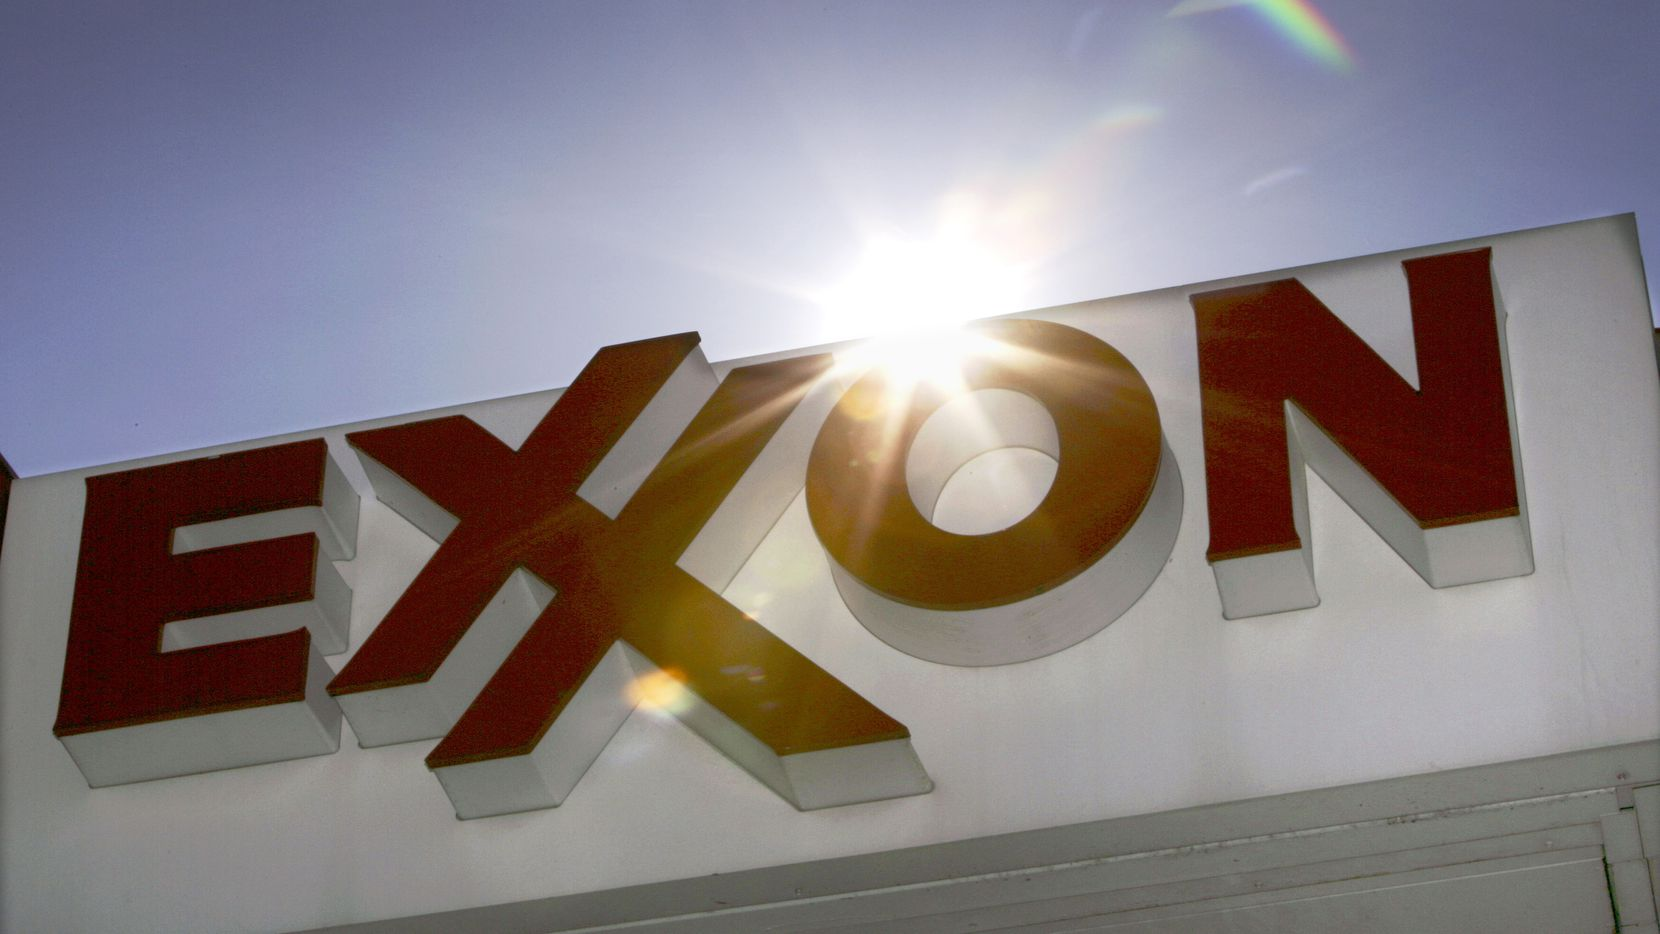 FILE - This Oct. 26, 2006, file photo shows an Exxon logo at a gas station in Dallas. Exxon Mobil said Thursday, April 26, 2012, that it earned $9.45 billion, or $2 per share, in the first quarter, down from $10.7 billion, or $2.14, a year earlier. Revenue rose 8.8 percent to $124.1 billion. (AP Photo/LM Otero, File) 04272012xBIZ 06102012xNEWS 05162013xBIZ 05172013xBIZ 05182013xBIZ